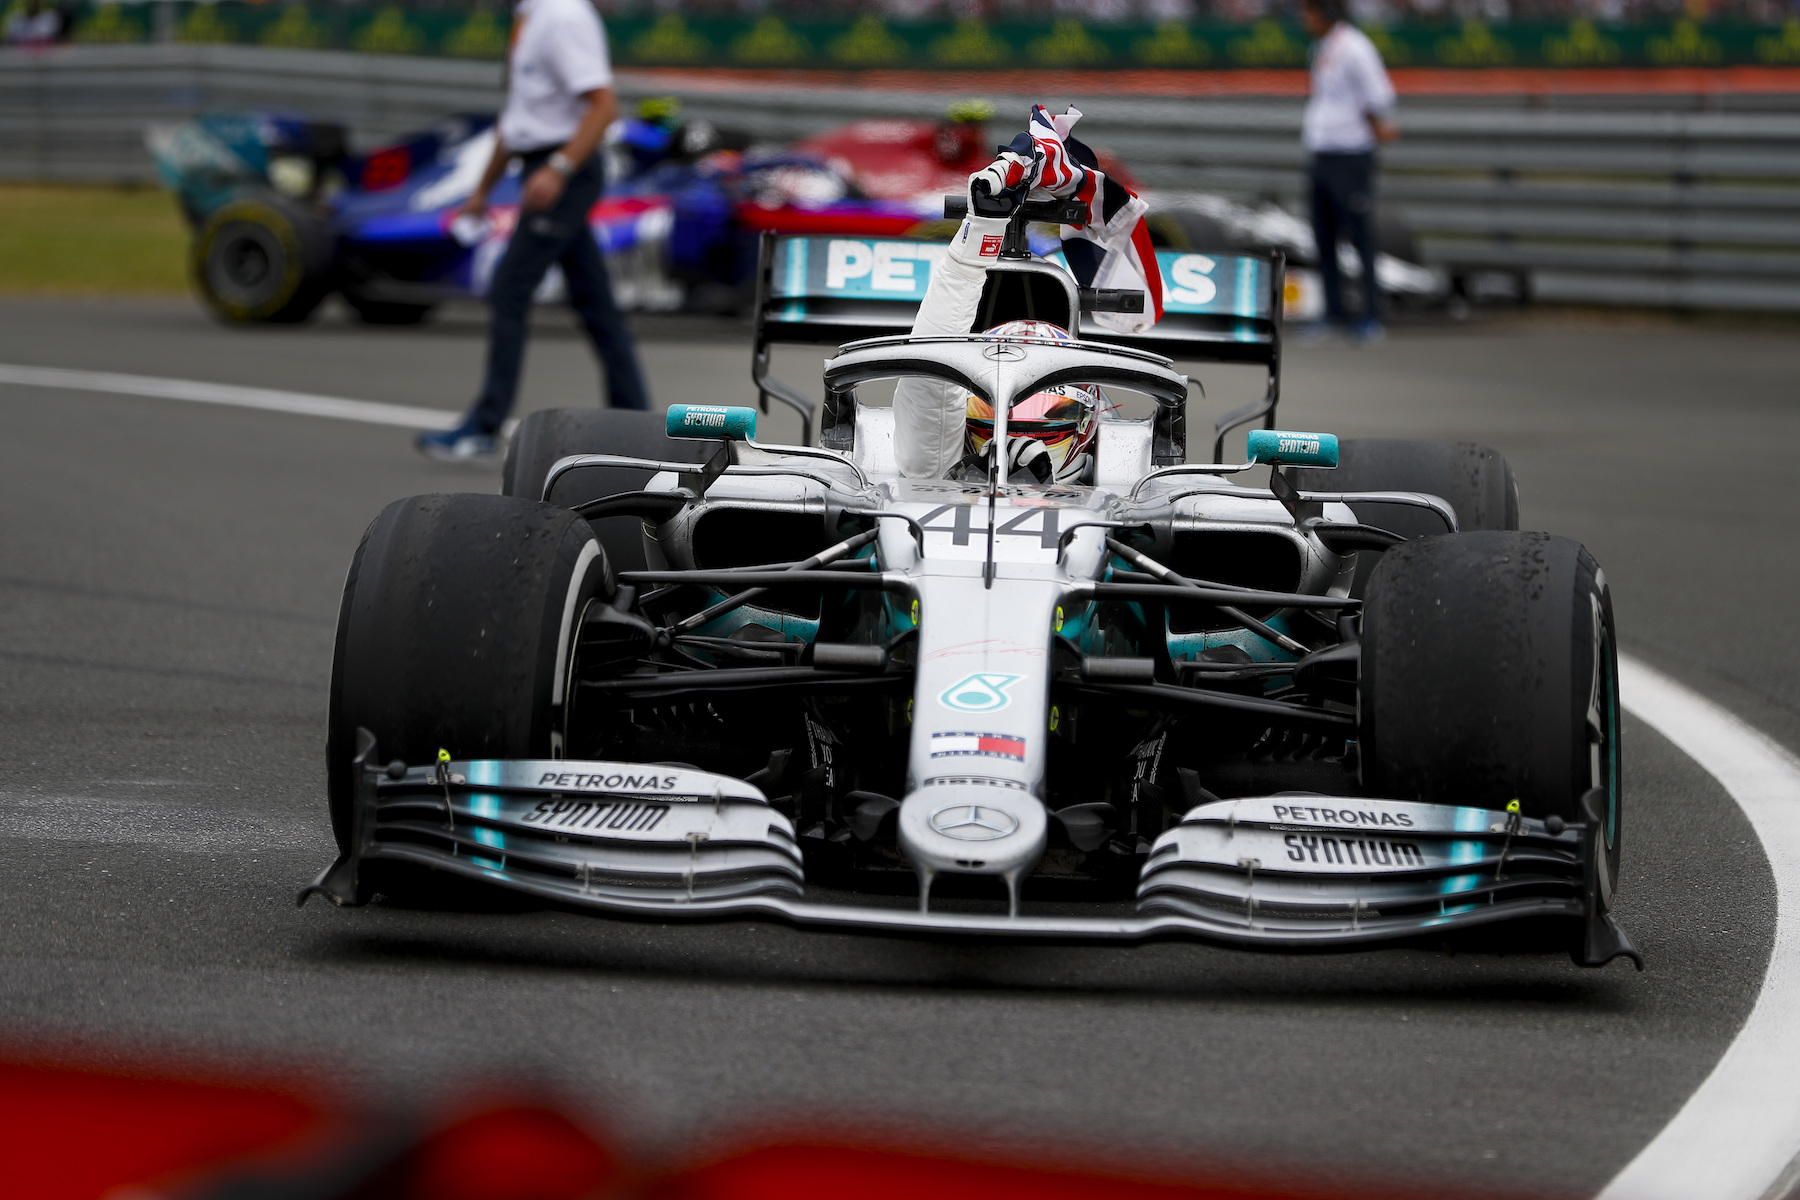 6 Q 2019 British Grand Prix Sunday 23.jpg